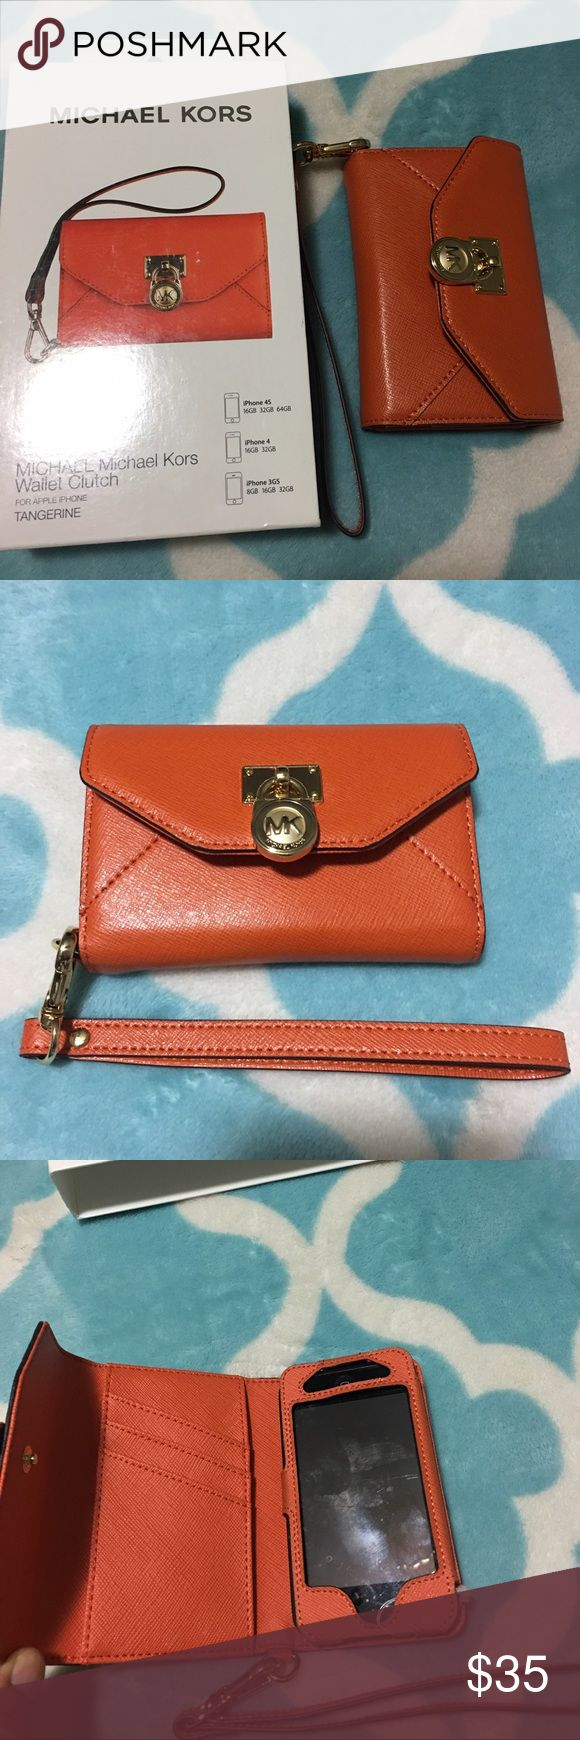 Micheal Kors Wallet Clutch for Apple IPhone Micheal Kors Wallet Clucth for Apple IPhone 3 and 4 but it is also for IPod. It is tangerine color. IPod is not included. KORS Michael Kors Accessories Phone Cases